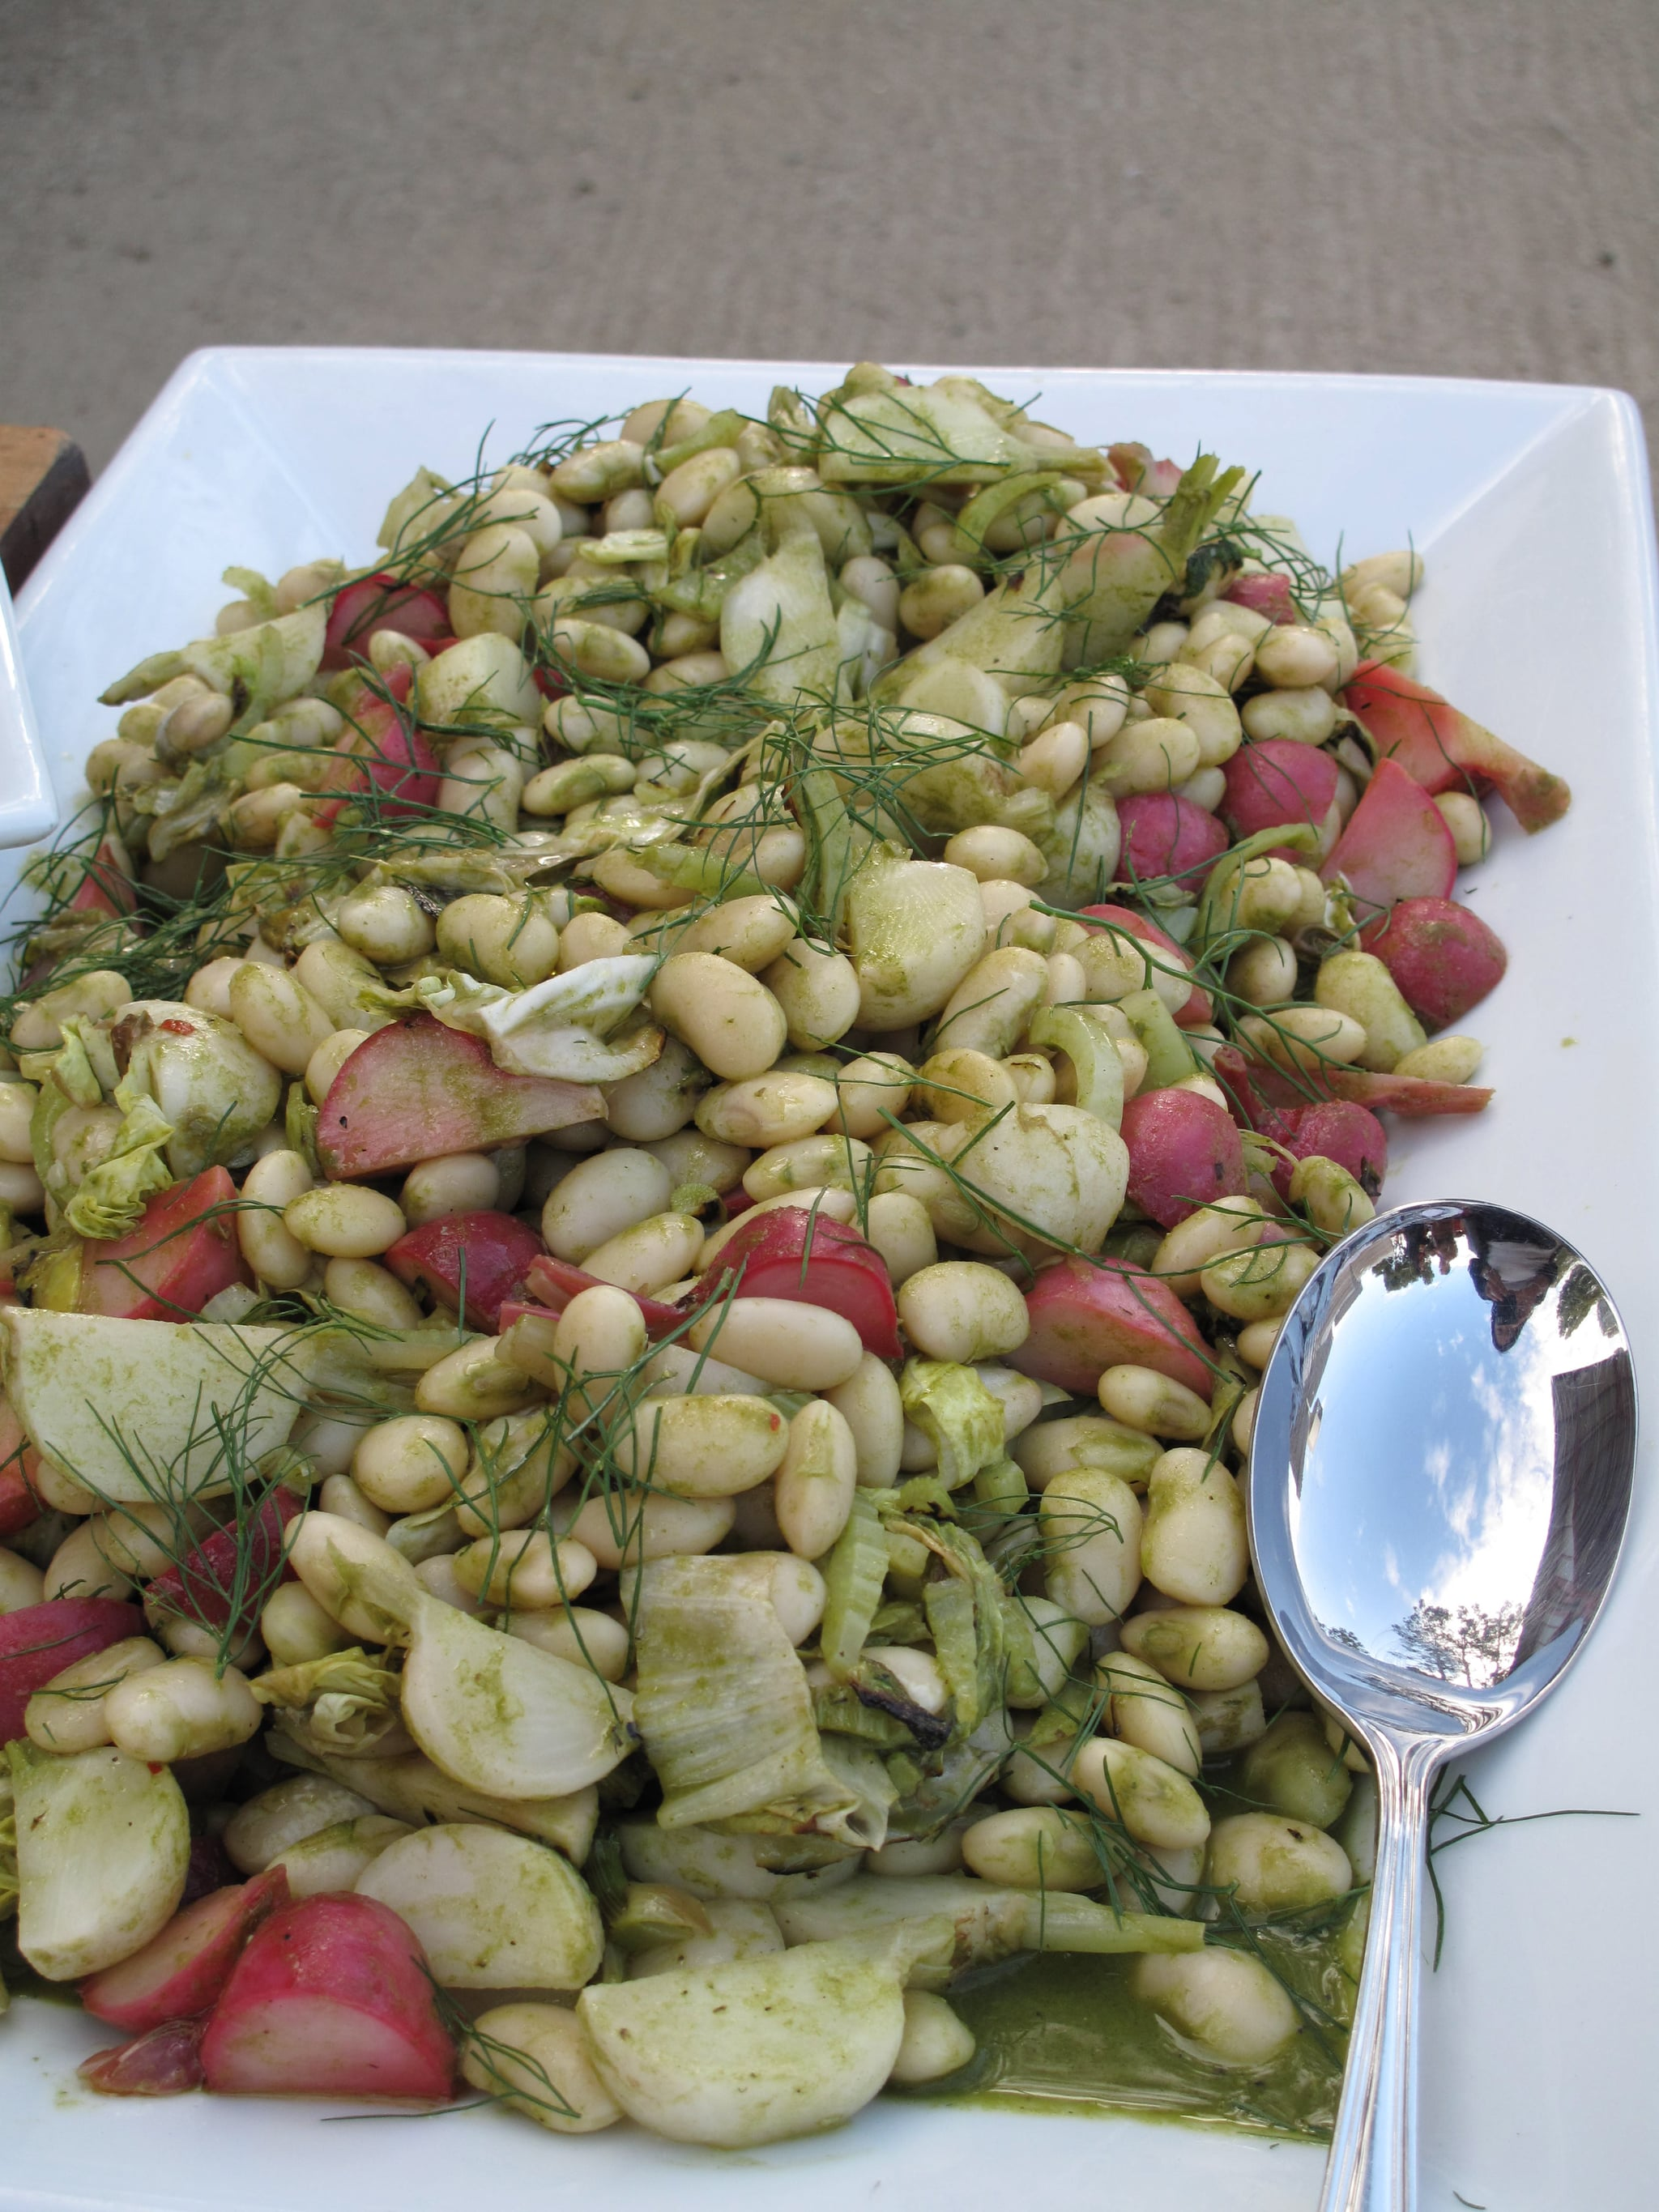 White beans with dill were the perfect accompaniment to the sunny cocktails.